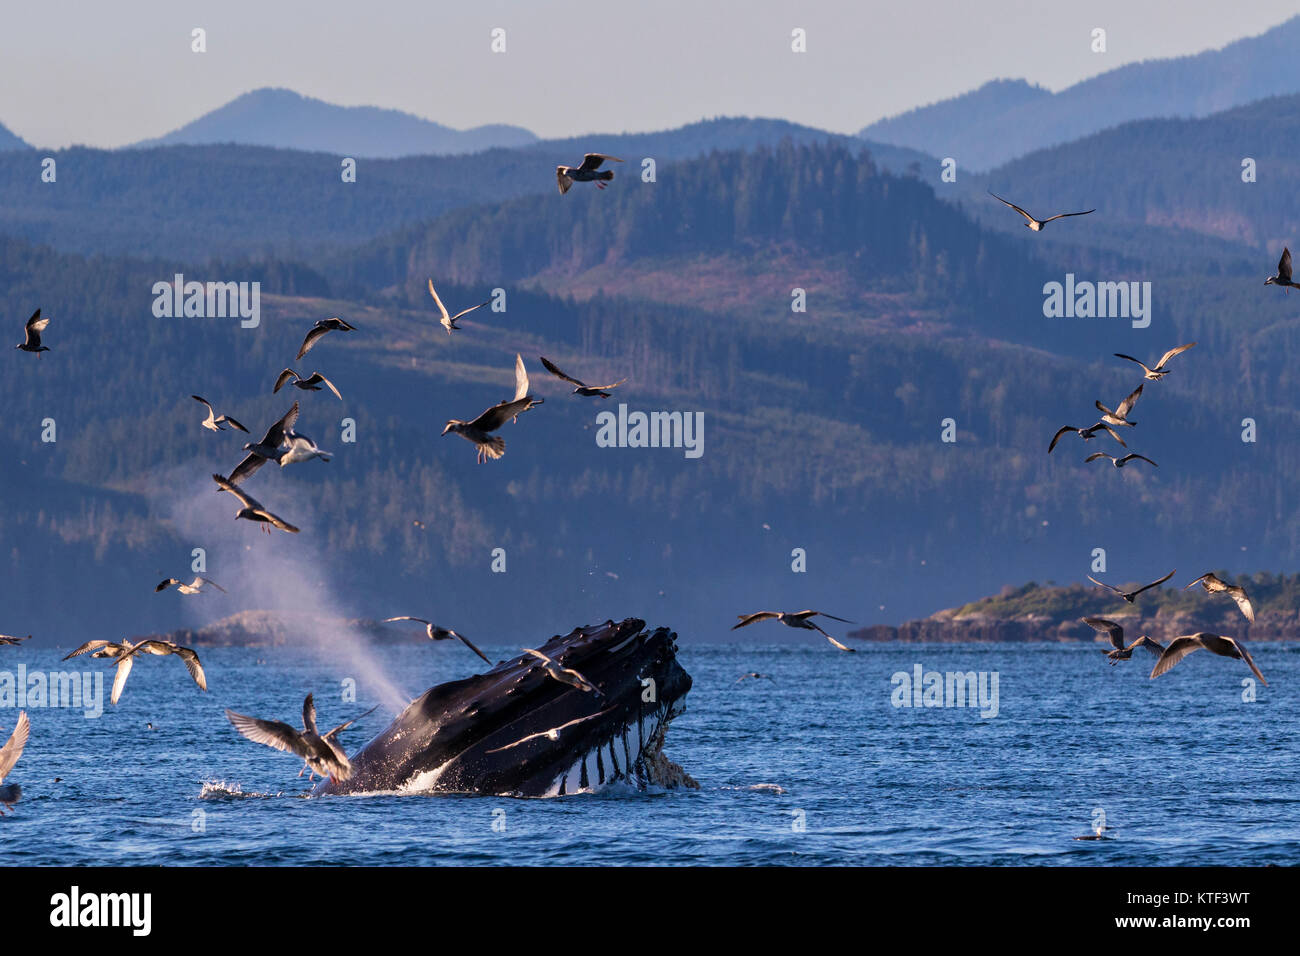 Humpback whale (Megaptera novaeangliae) lunge feeding with mouth wide open in Broughton Archipelago Provincial Marine - Stock Image